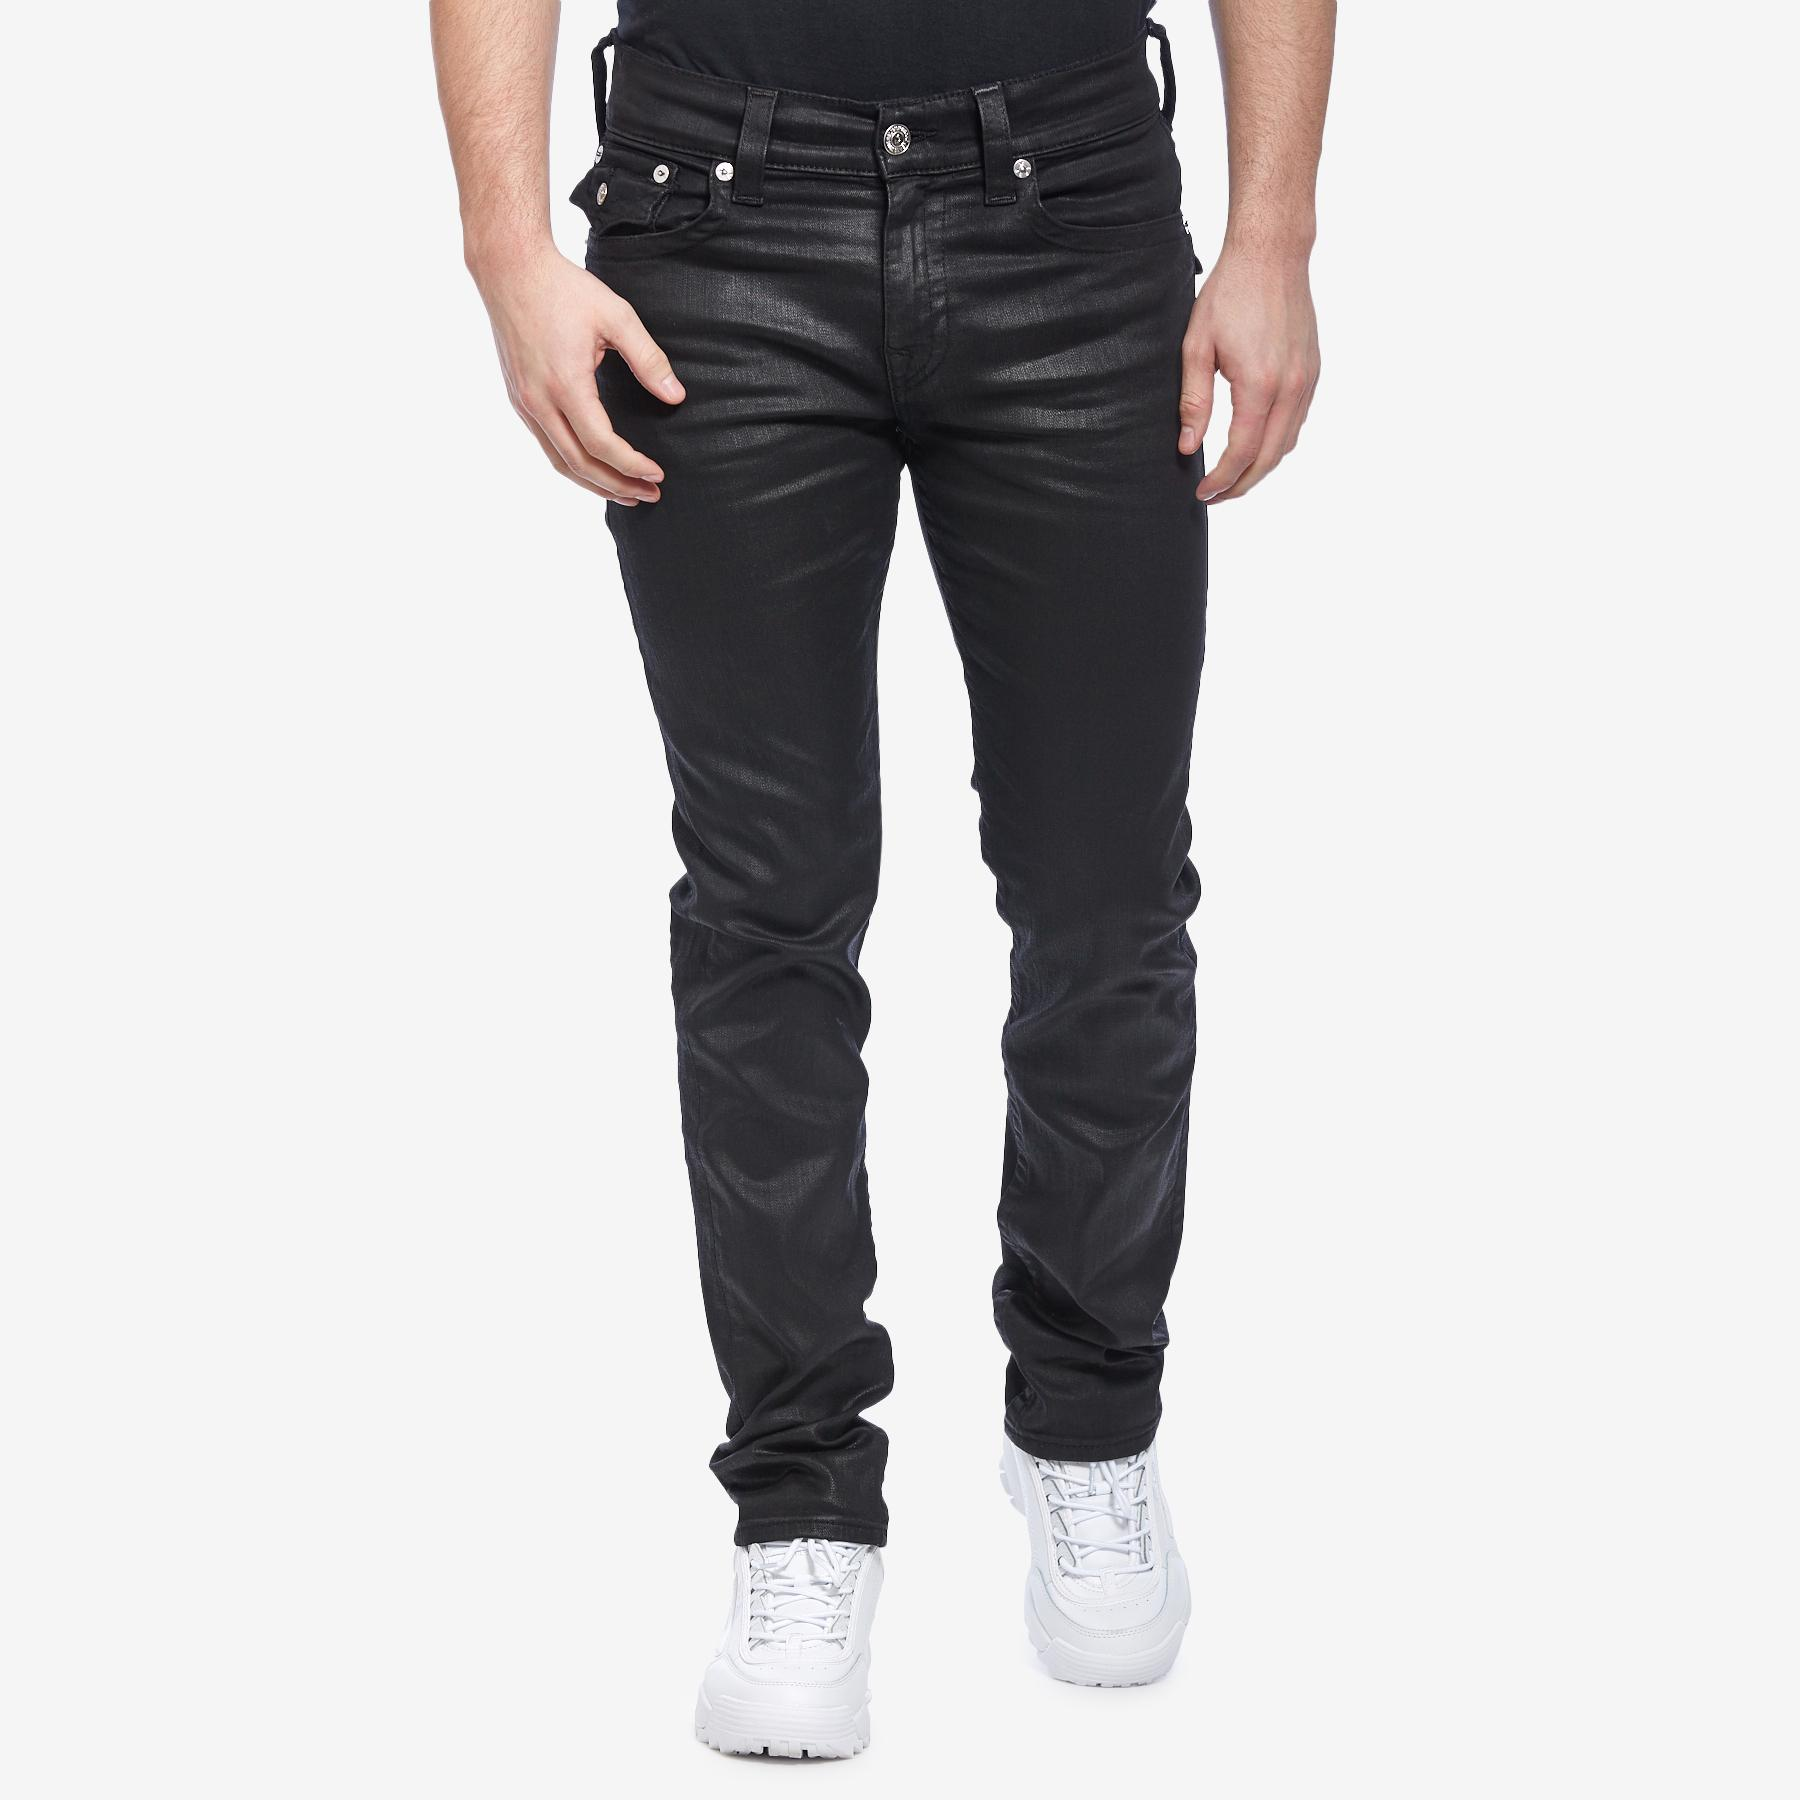 Men's Rocco Skinny Coated Jean